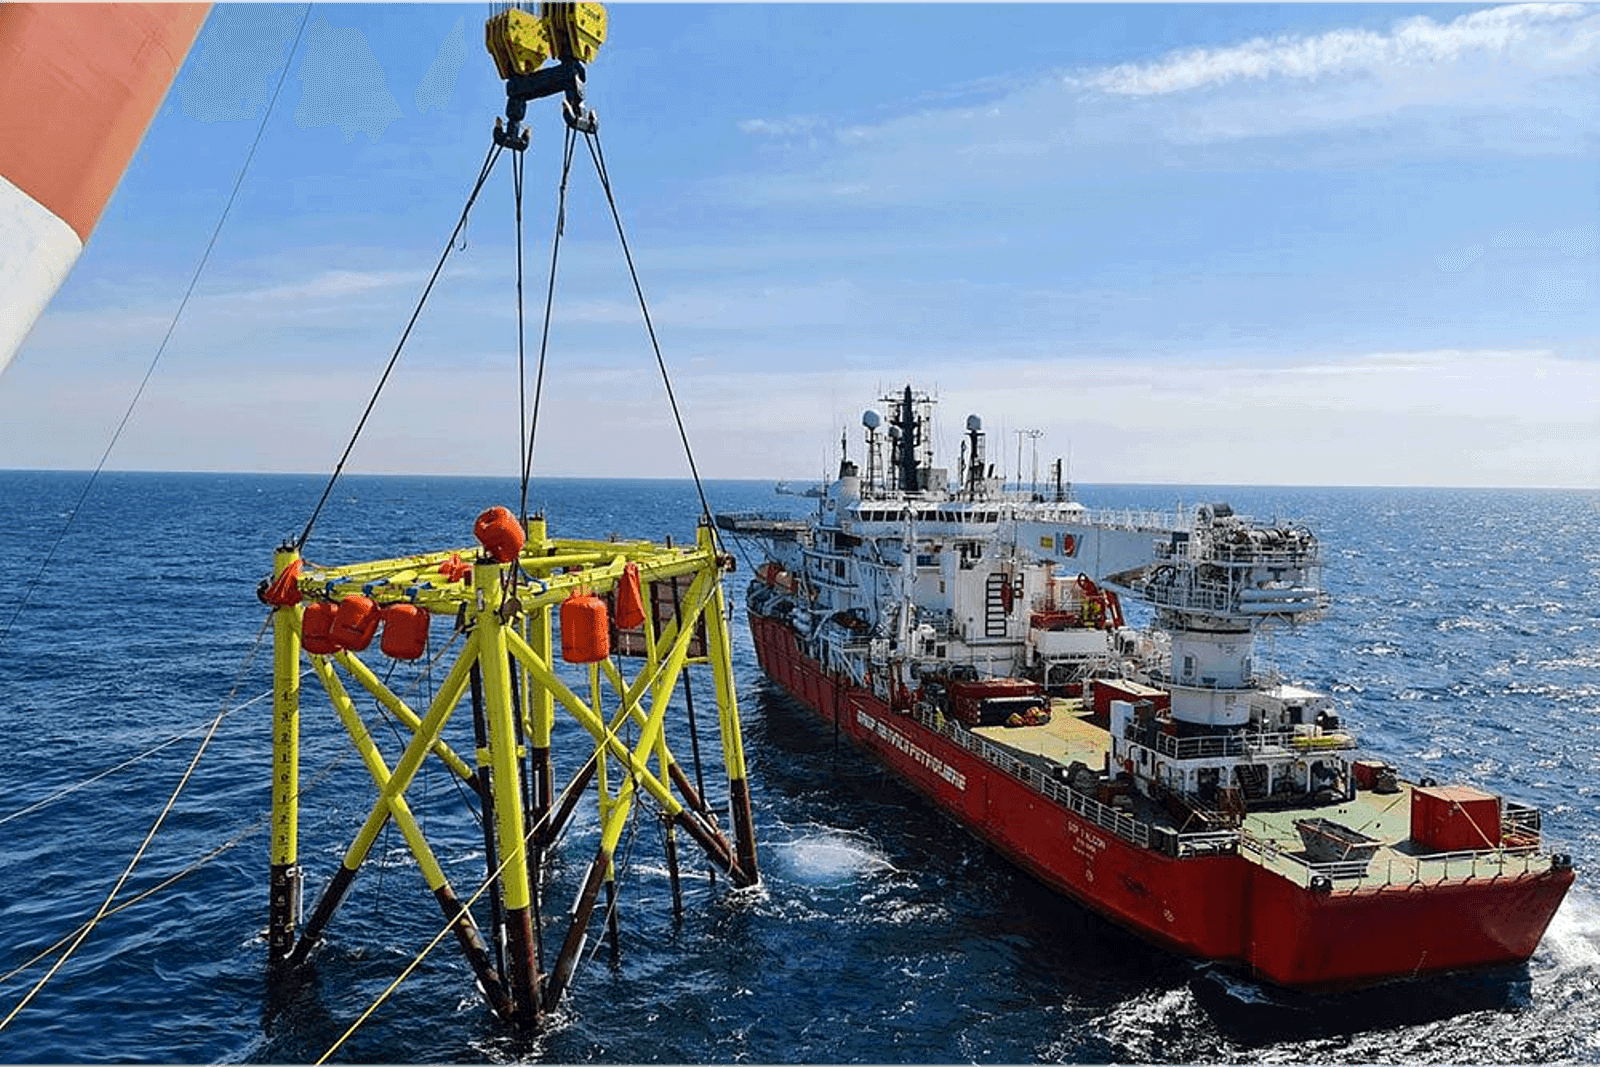 Local oil services group installs first offshore rig in Romania after 34 years